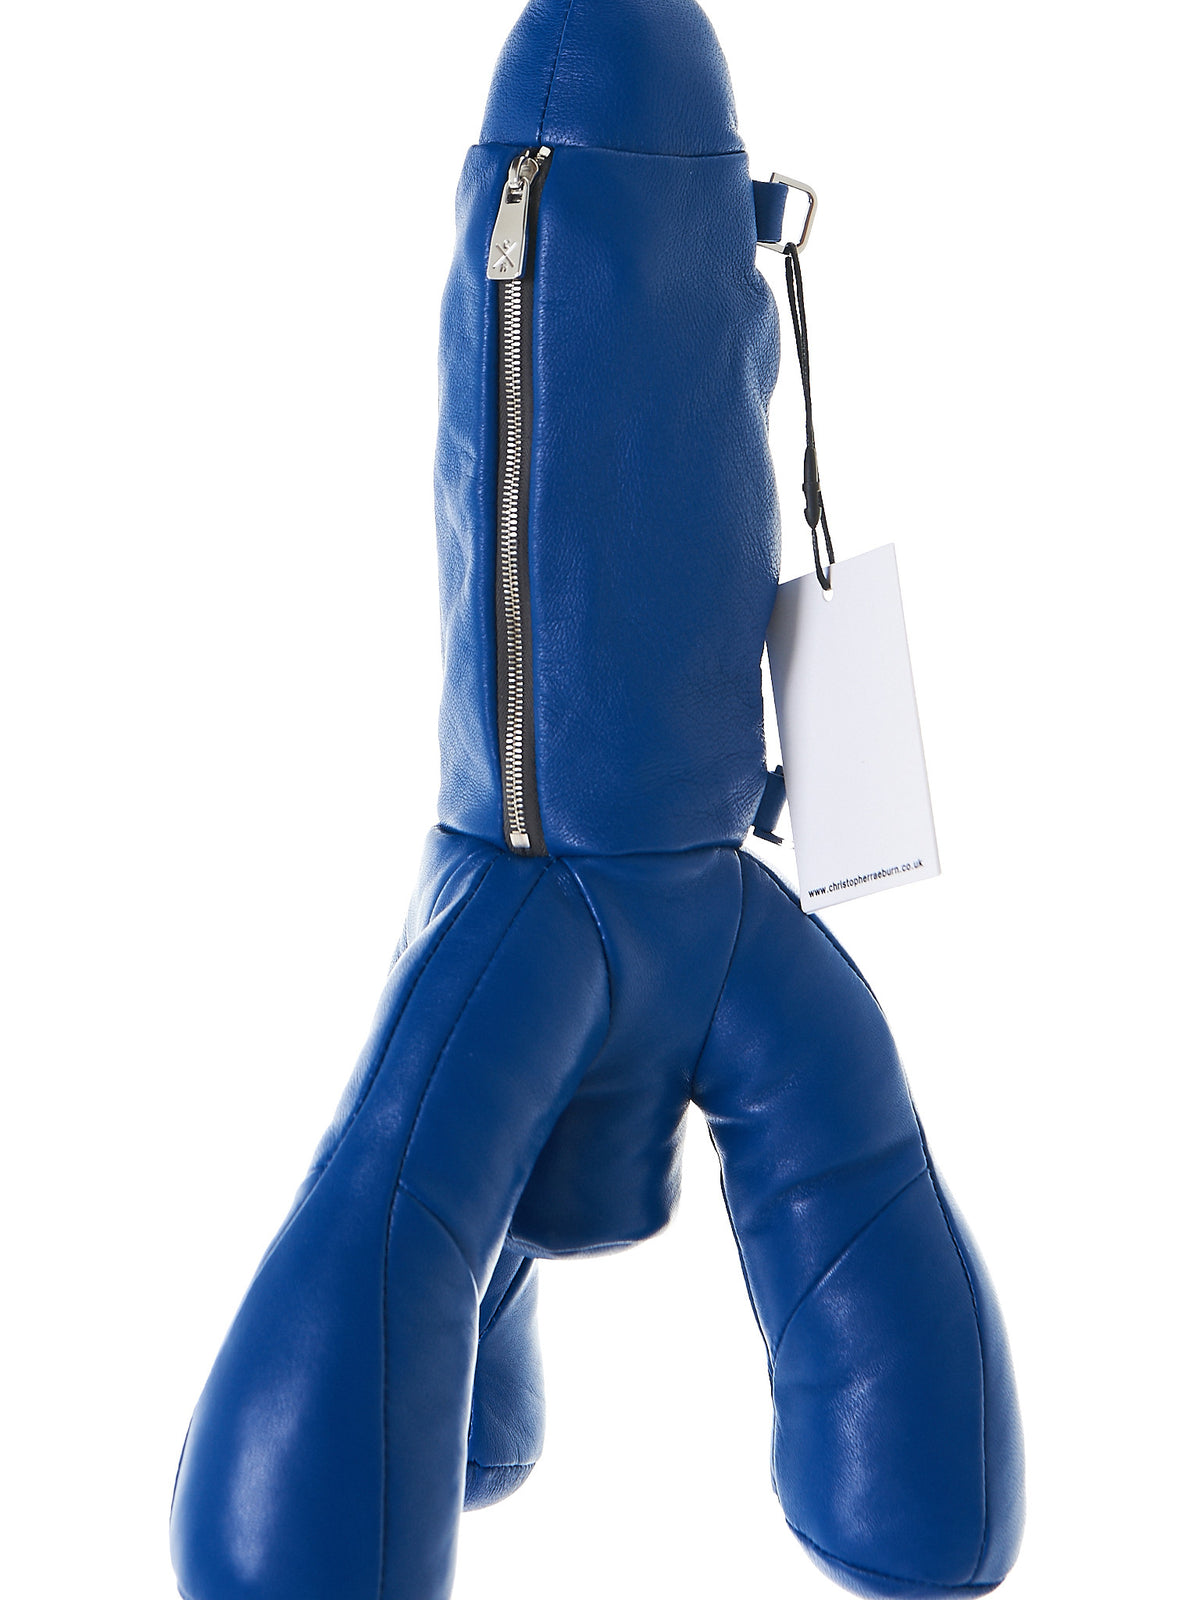 'Rocket' Hand Bag (ABG6050 BLUE) - H. Lorenzo